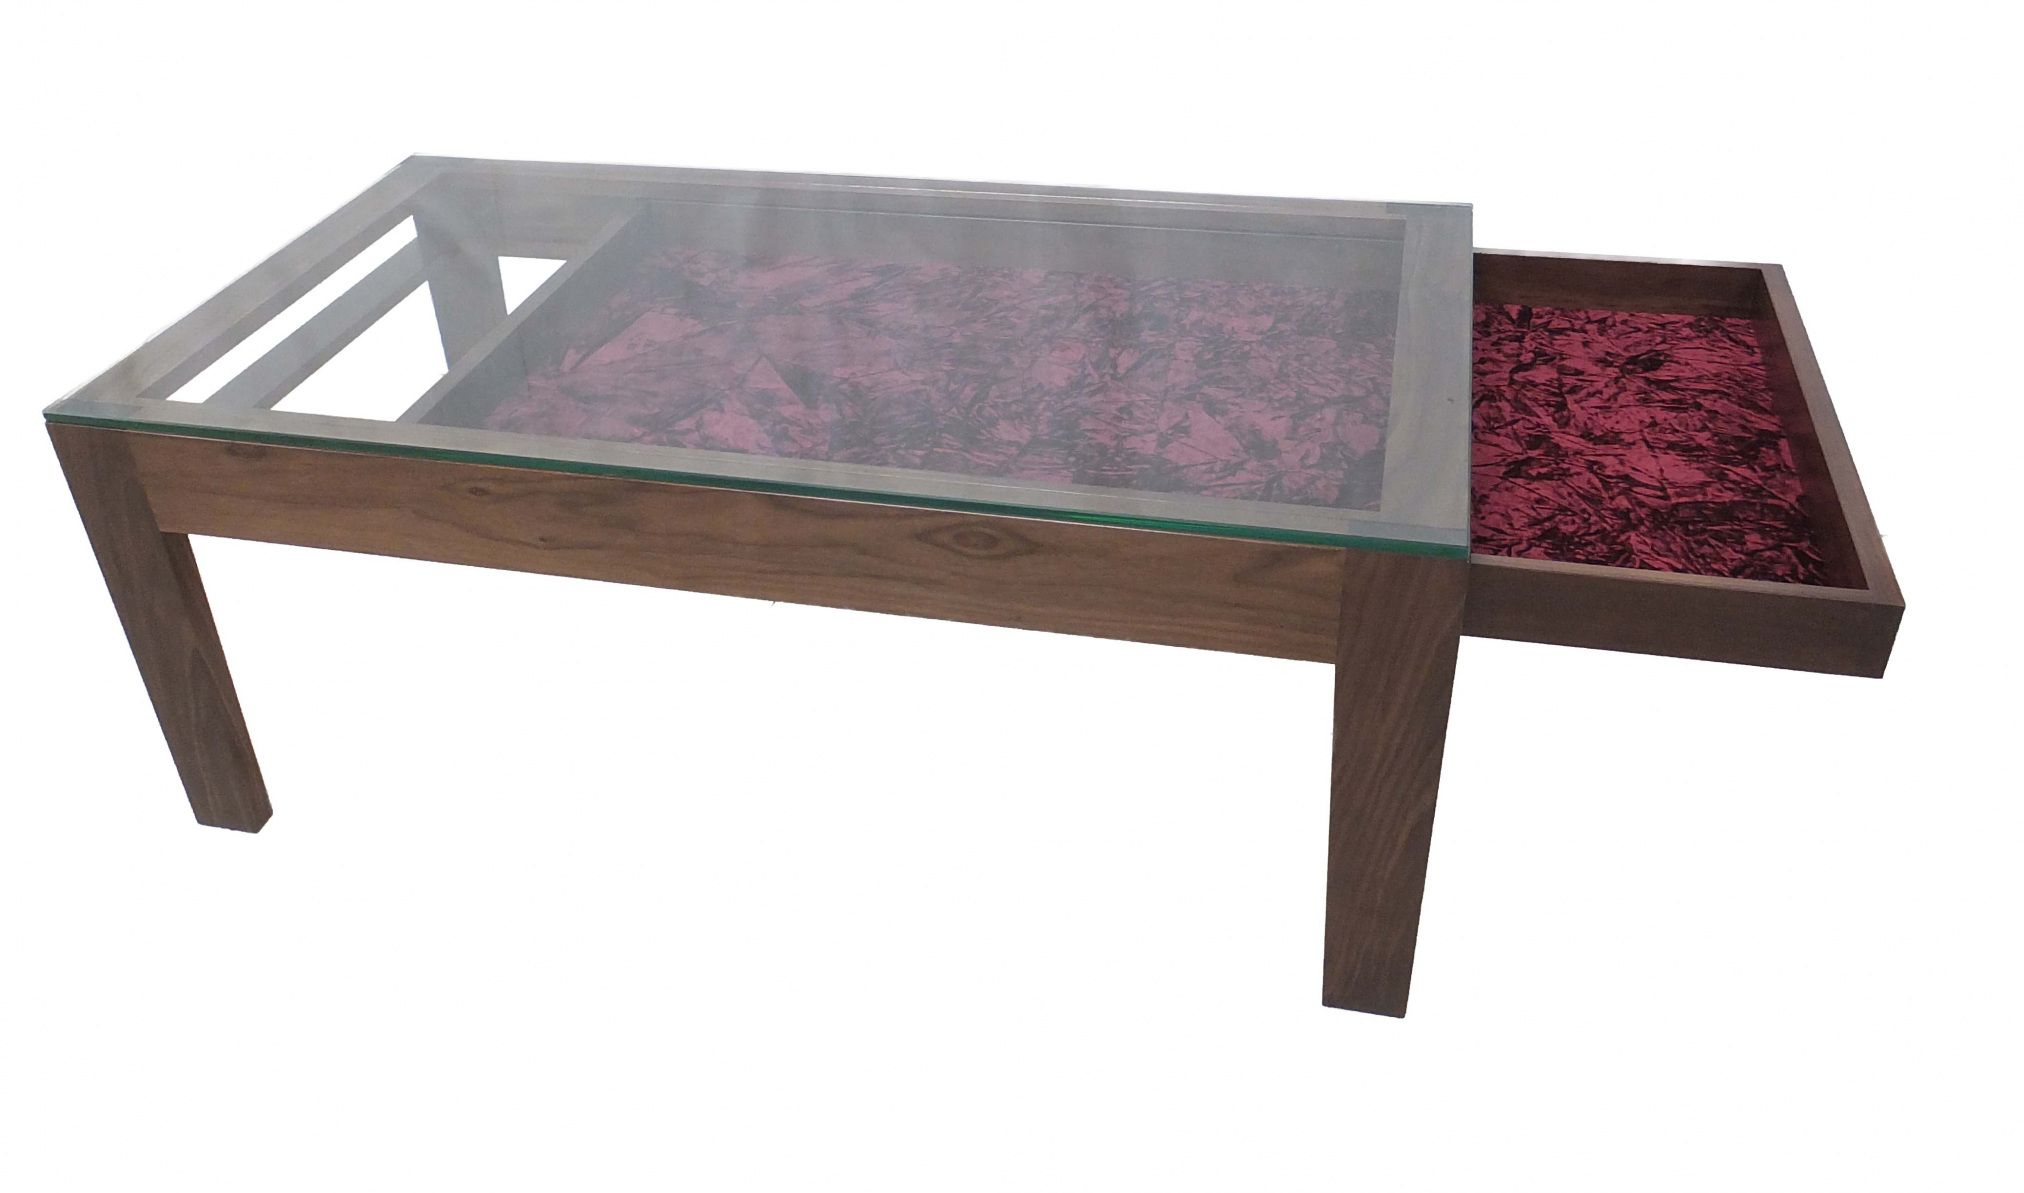 Charmant 20 Glass Top Display Coffee Table With Drawers   Luxury Home Office  Furniture Check More At